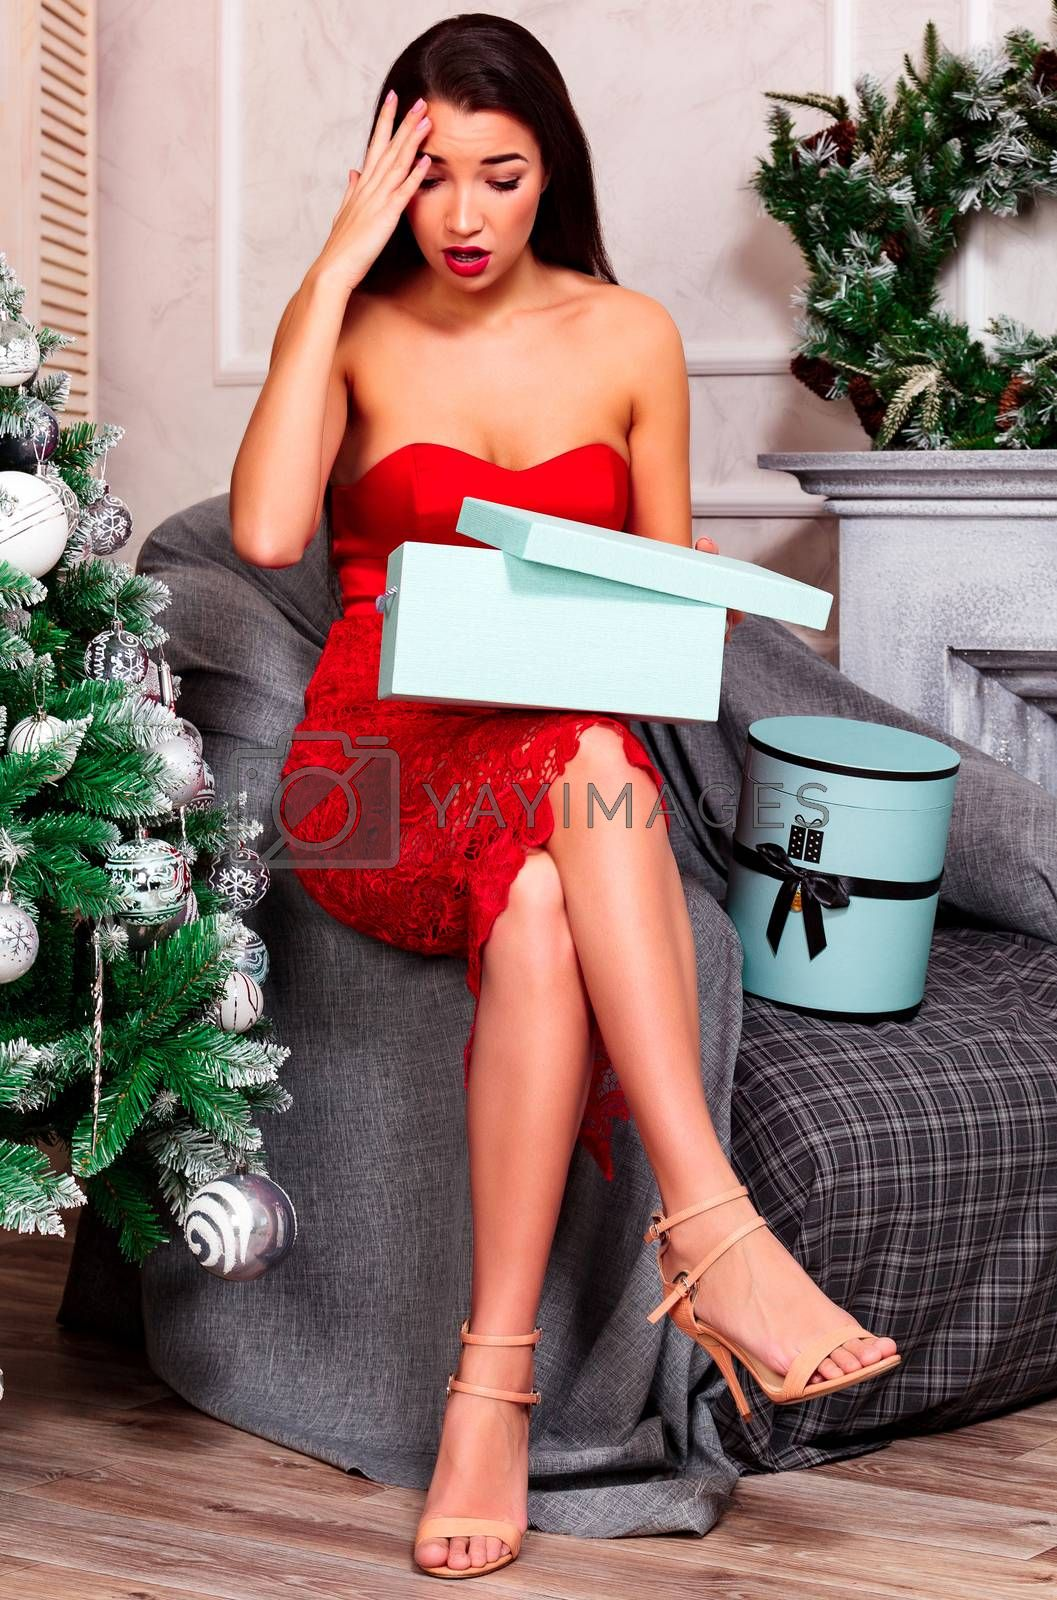 Unhappy and frustrated young woman holding gift box, christmas holidays concept